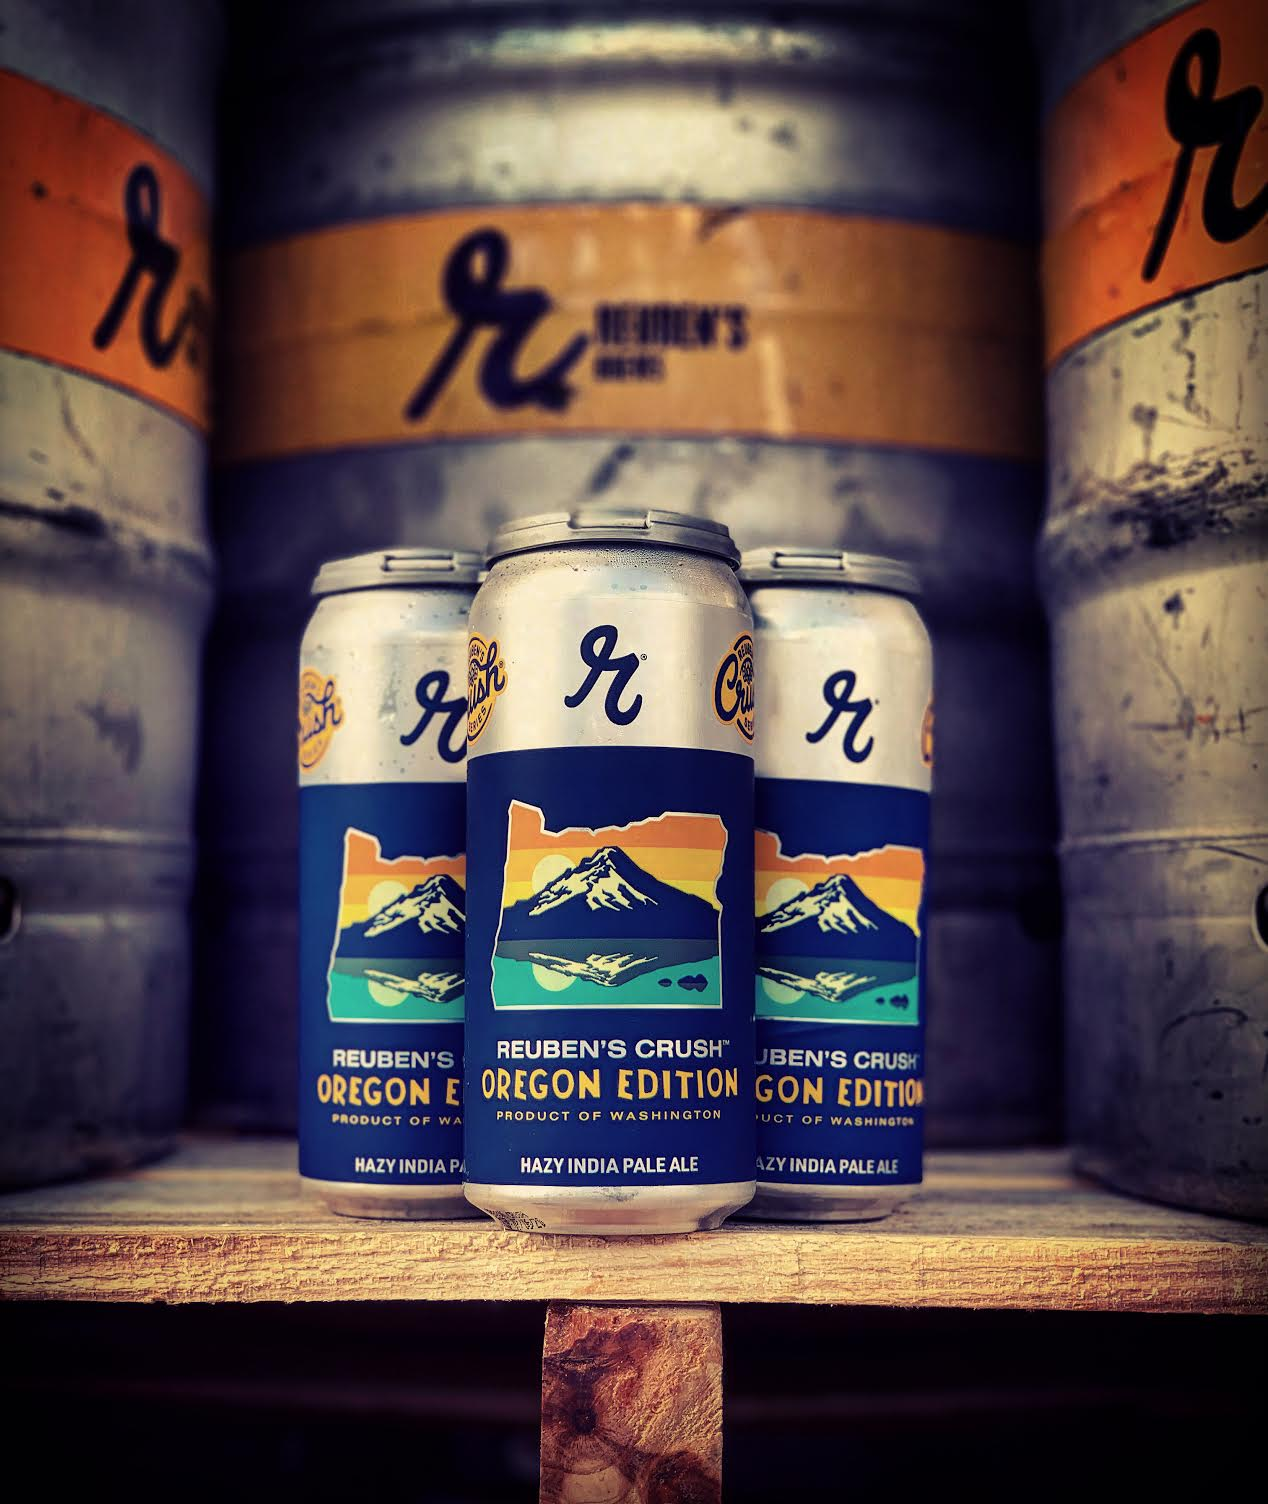 image of Crush OREGON EDITION courtesy of Reuben's Brews